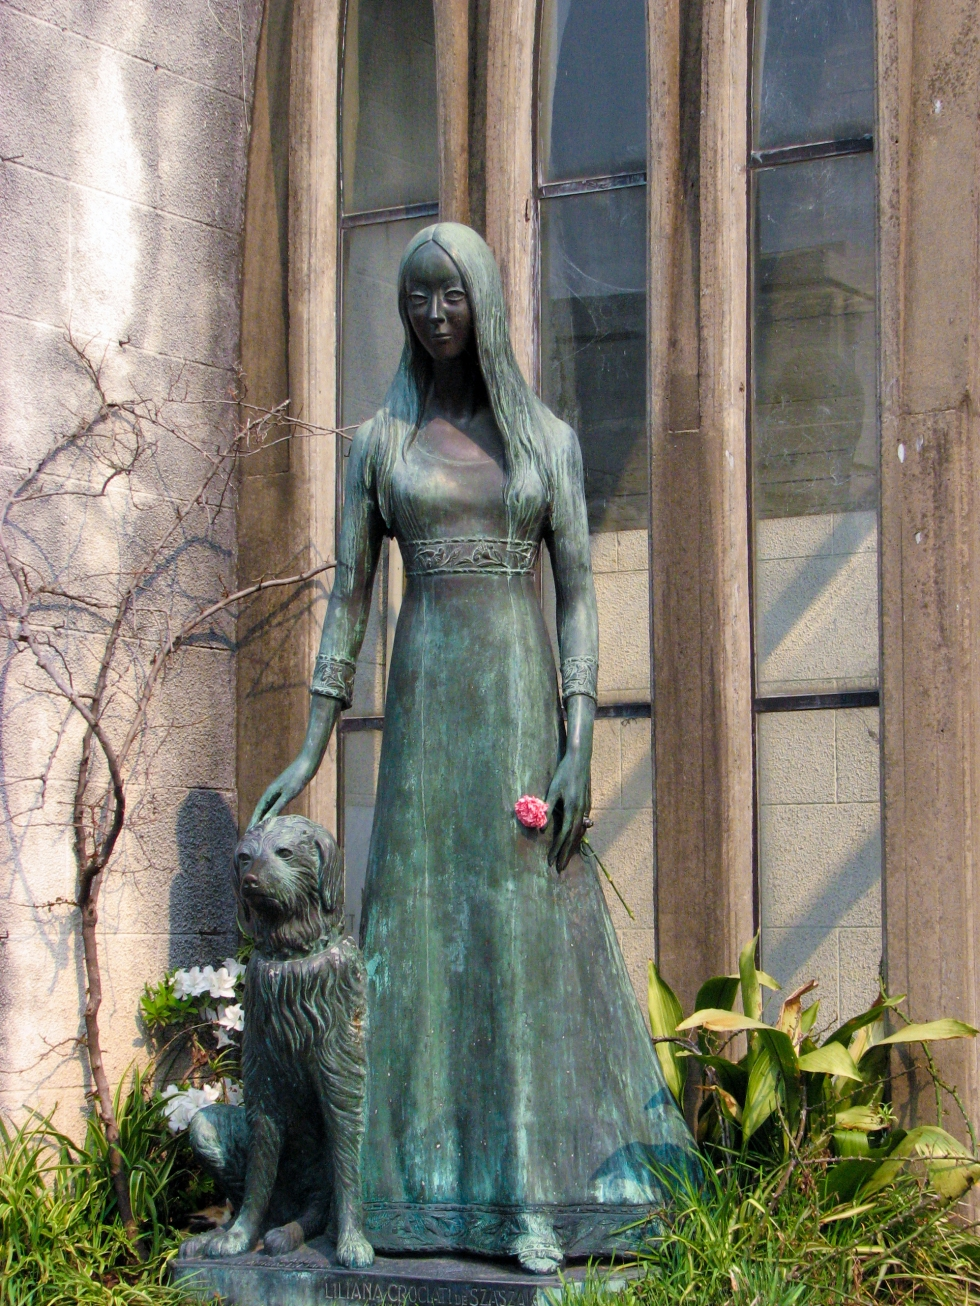 A memorial statue of a woman and her dog in the Recoleta cemetery. Buenos Aires, Argentina.